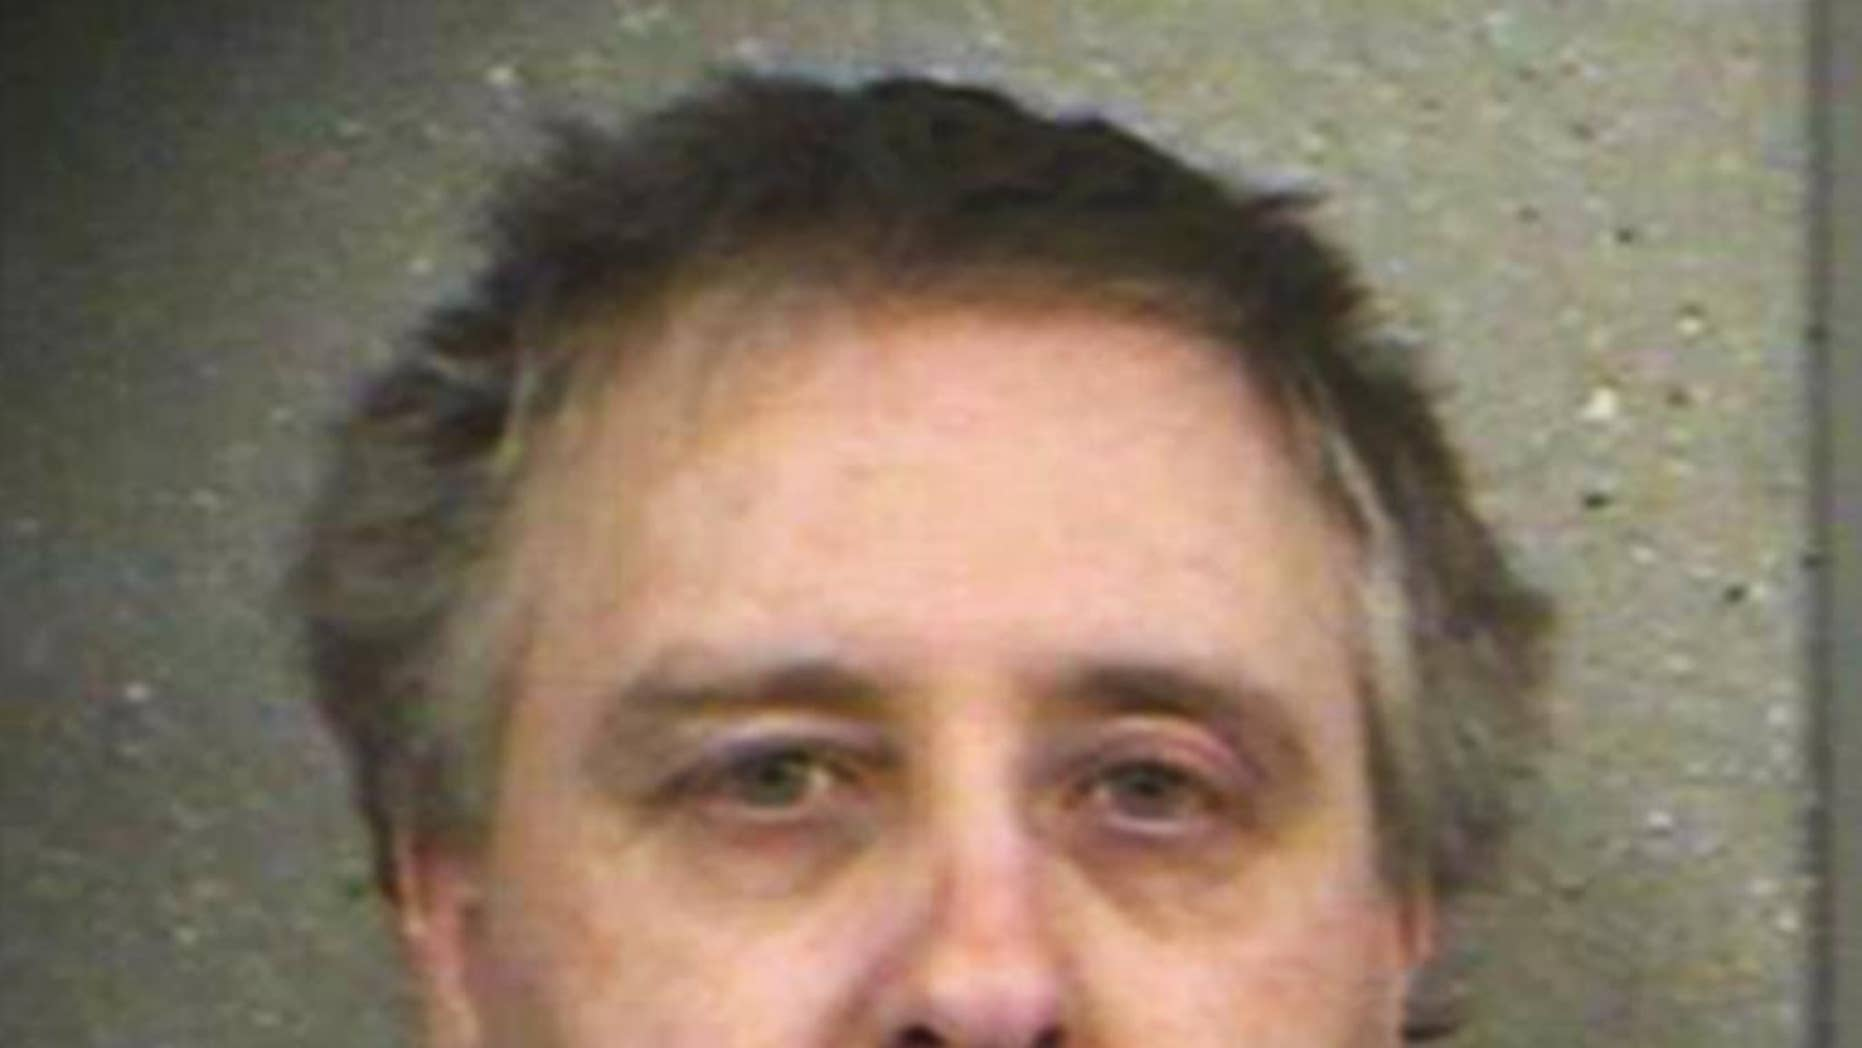 Steve Thomas is seen in this 2007 photo provided by the North Dakota Department of Corrections and Rehabilitation. Thomas who killed his neighbor in 1999 in a dispute over water drainage,  leaves prison without ever telling authorities where he dumped the body. Thomas was released Saturday, May 24, 2014. His plea agreement called for him to face a charge of murder if he was uncooperative in finding the body, but authorities say even hypnosis can't help Thomas remember where he dumped the body. (AP Photo/The North Dakota Department of Corrections and Rehabilitation)